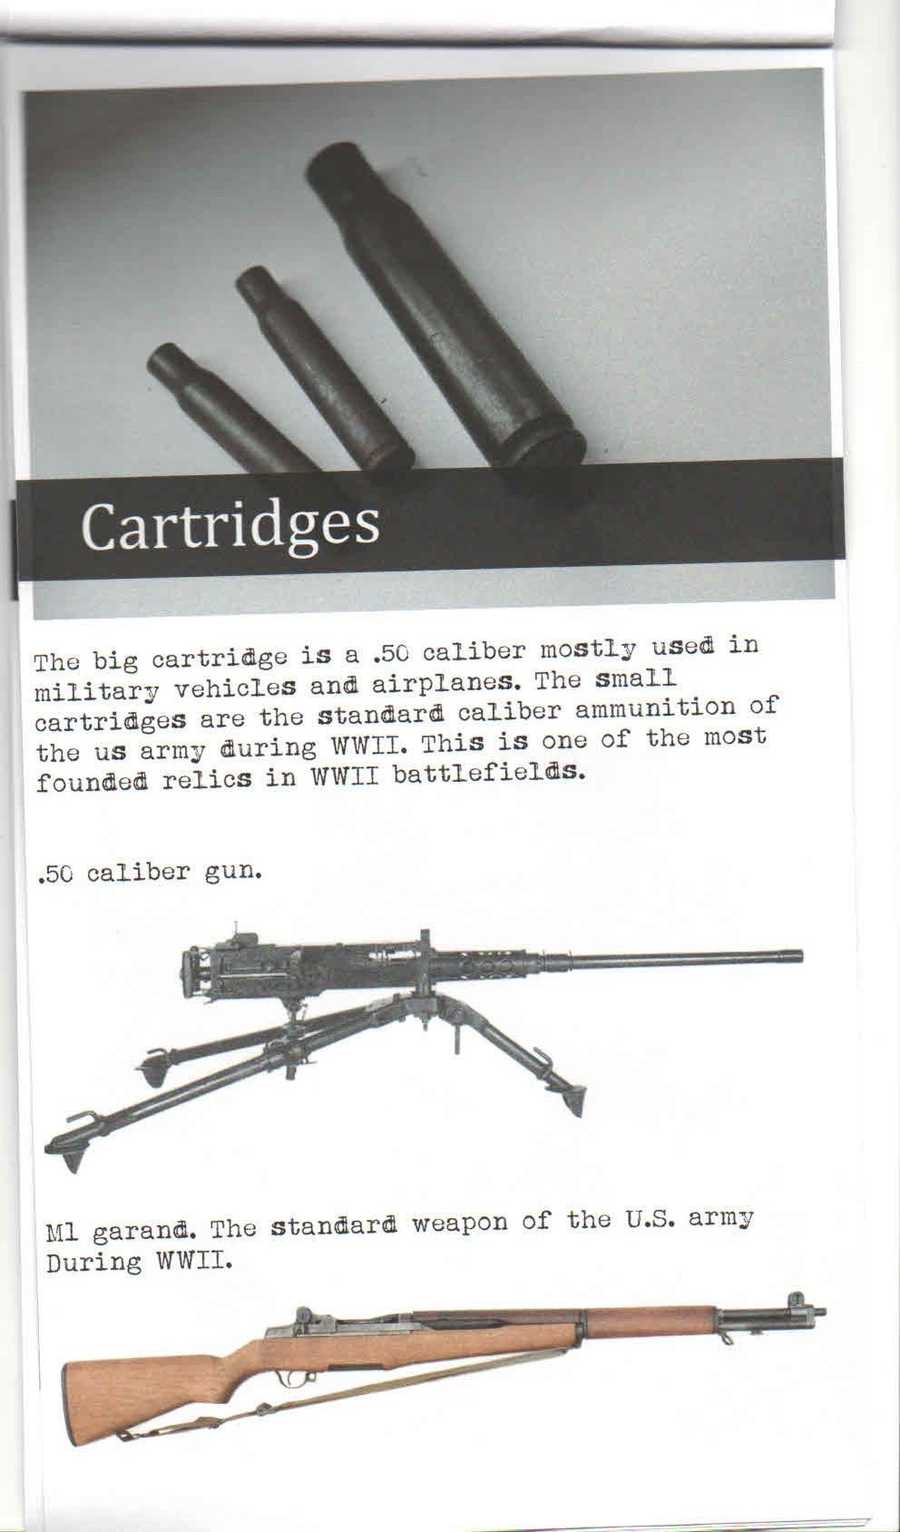 The big cartridge is .50-caliber, mostly used in military vehicles and airplanes. The small cartridges were the standard-caliber ammunition of the U.S. Army during WWII and are one of the most found relics in WWII battlefields.